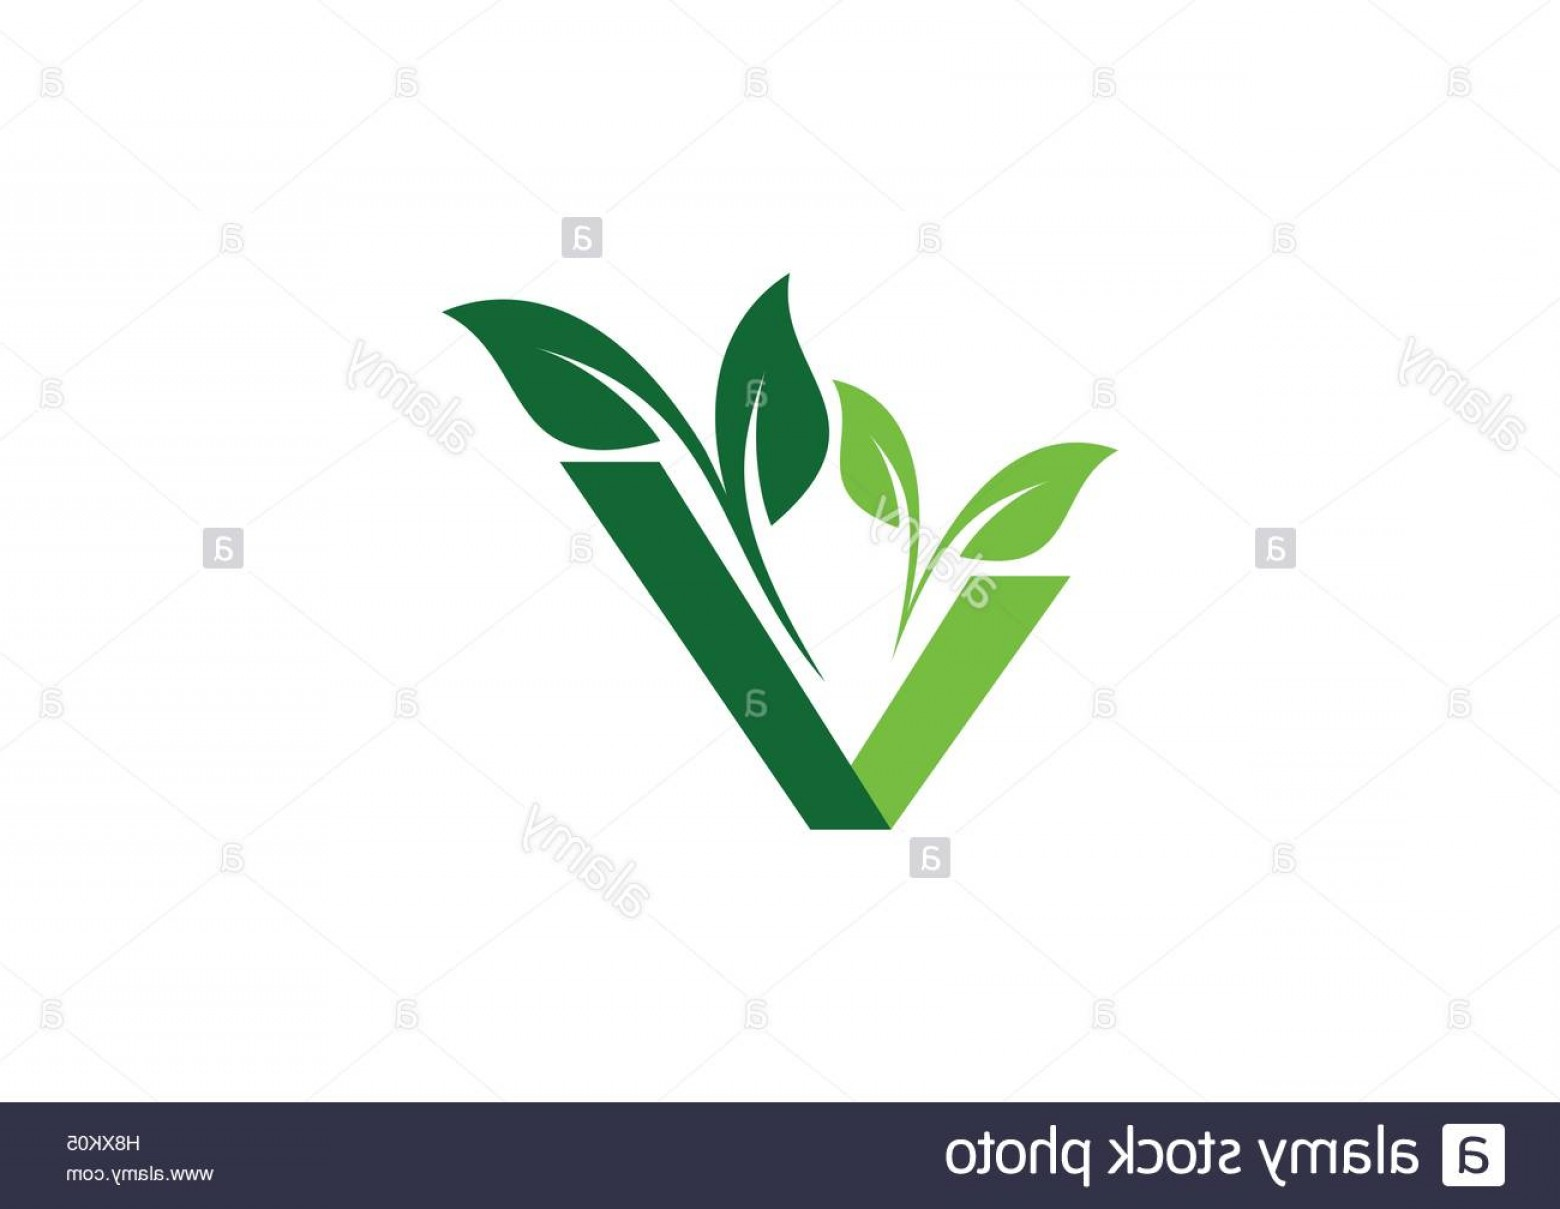 V Logo Vector: Stock Photo Vegan Plant Ecology Logo Green Natural Vegetable Logotype Natural